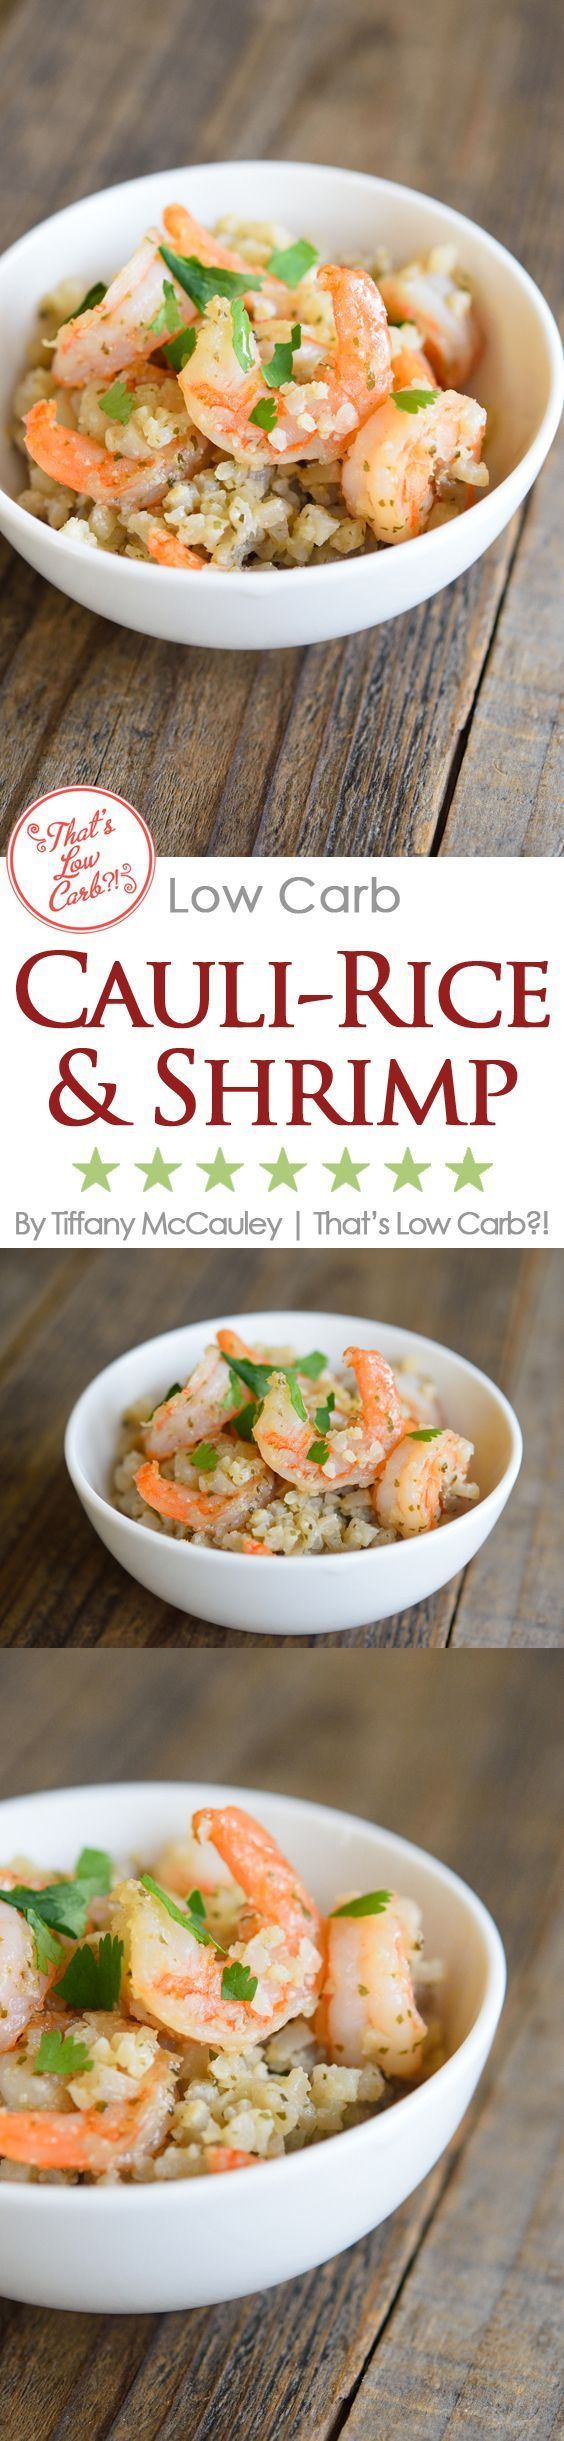 Low Carb Recipes | Low Carb Shrimp Recipes | Low Carb Cauliflower Rice Recipes | Low Carb Cooking | Recipes ~ https://www.thatslowcarb.com